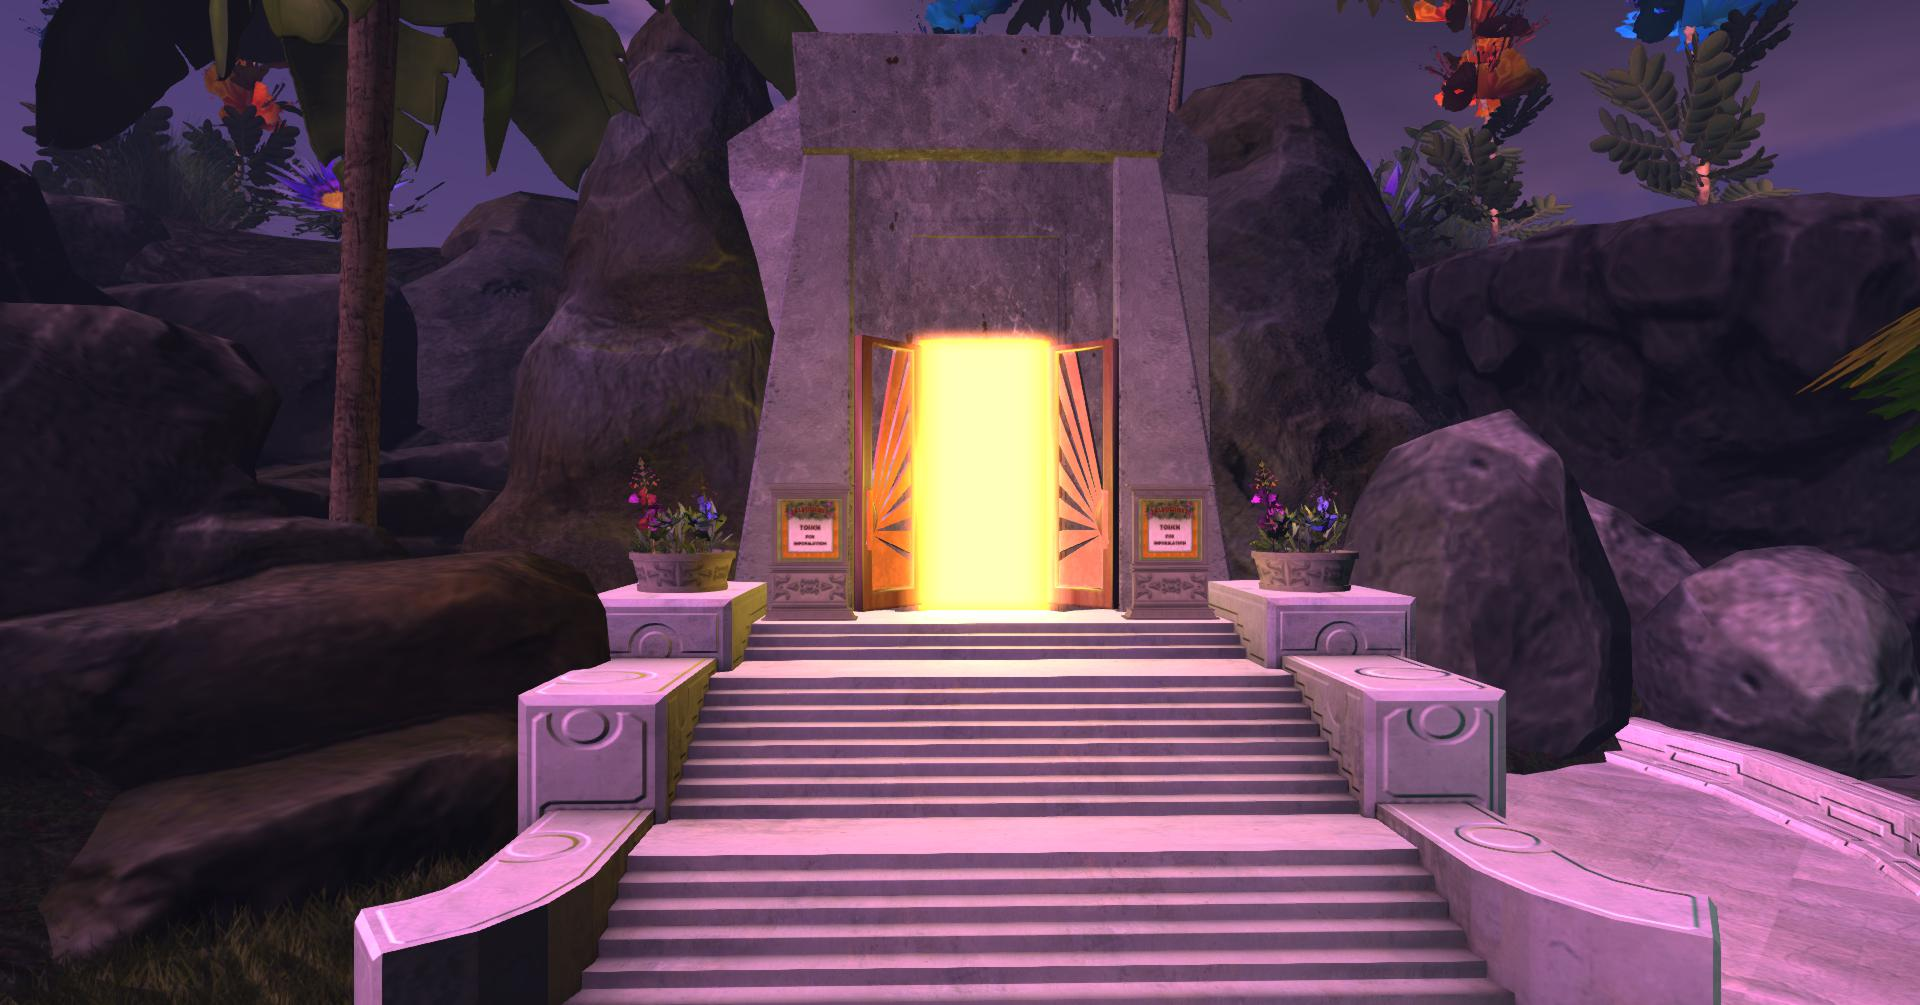 The portal to enter the game.